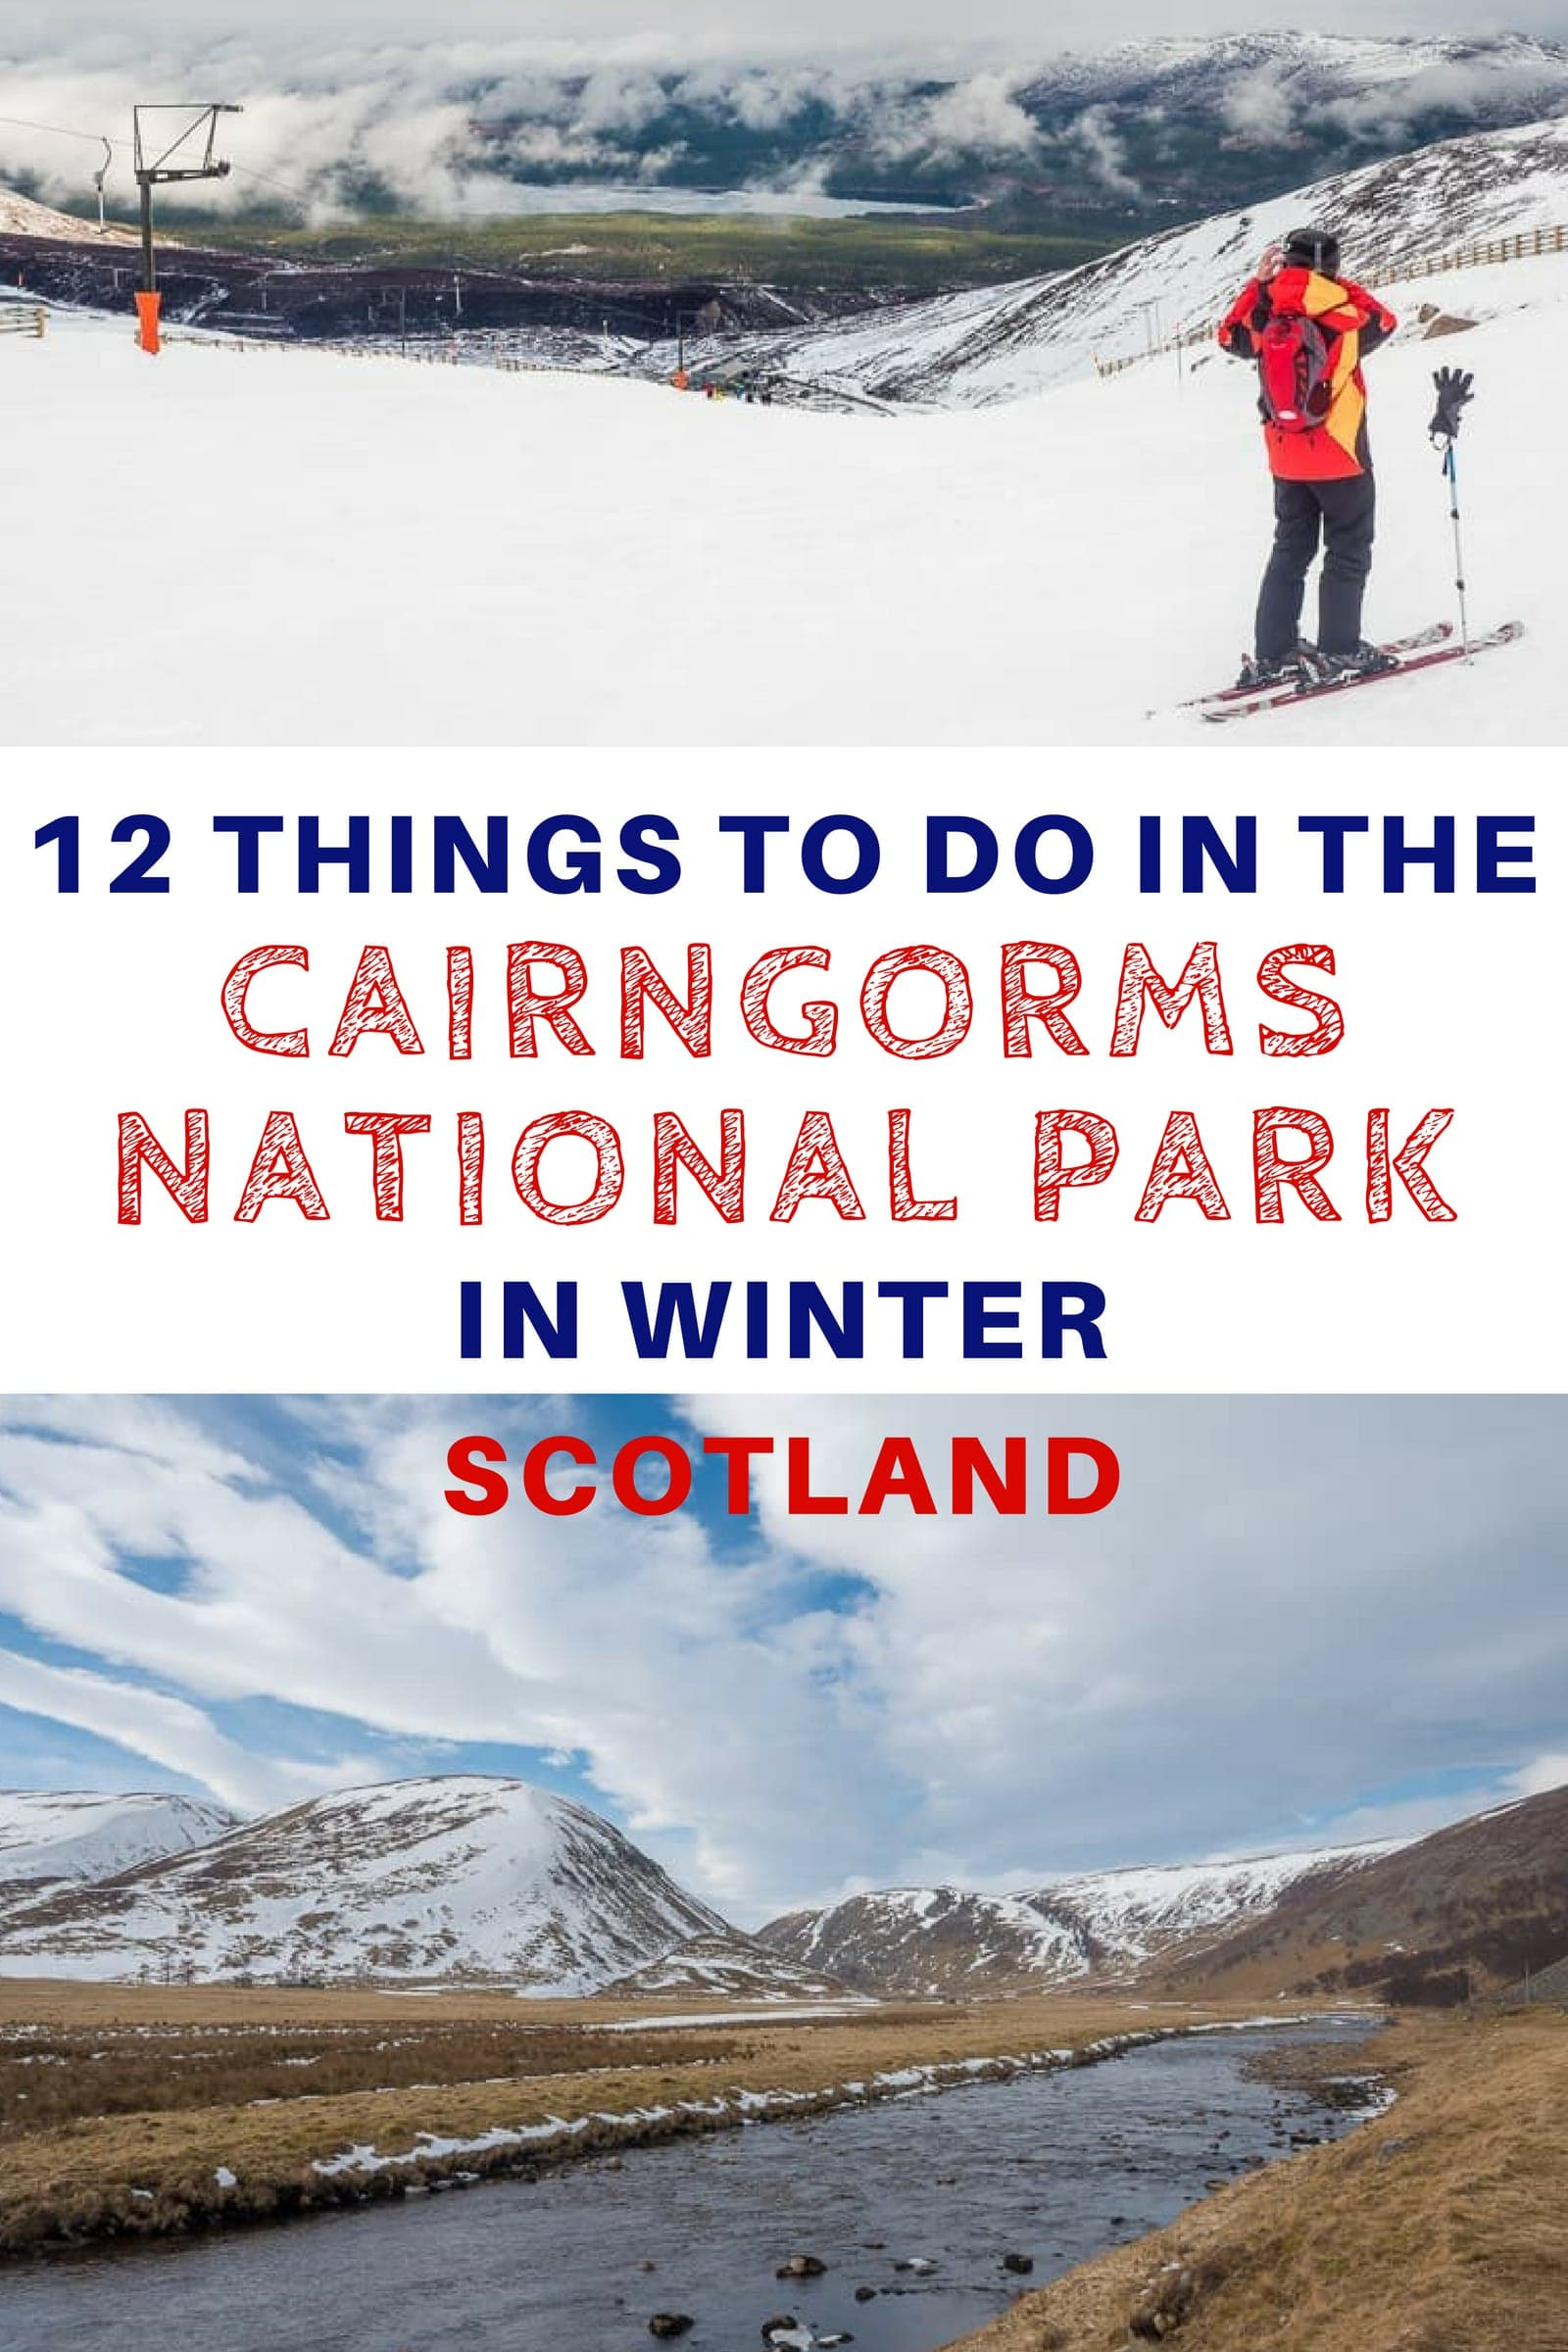 Our guide to traveling in the Cairngorms National Park in Winter in Scotland. We share 12 of the top things you can do in the Cairngorms during the winter months which include skiing, wildlife spotting, whisky tasting, exploring villages, hiking, and family attractions. We also share tips for getting around, winter driving, and finding lodging. #Cairngorms #Scotland #CairngormsNationalPark #ScottishHighlands #travel #wintertravel